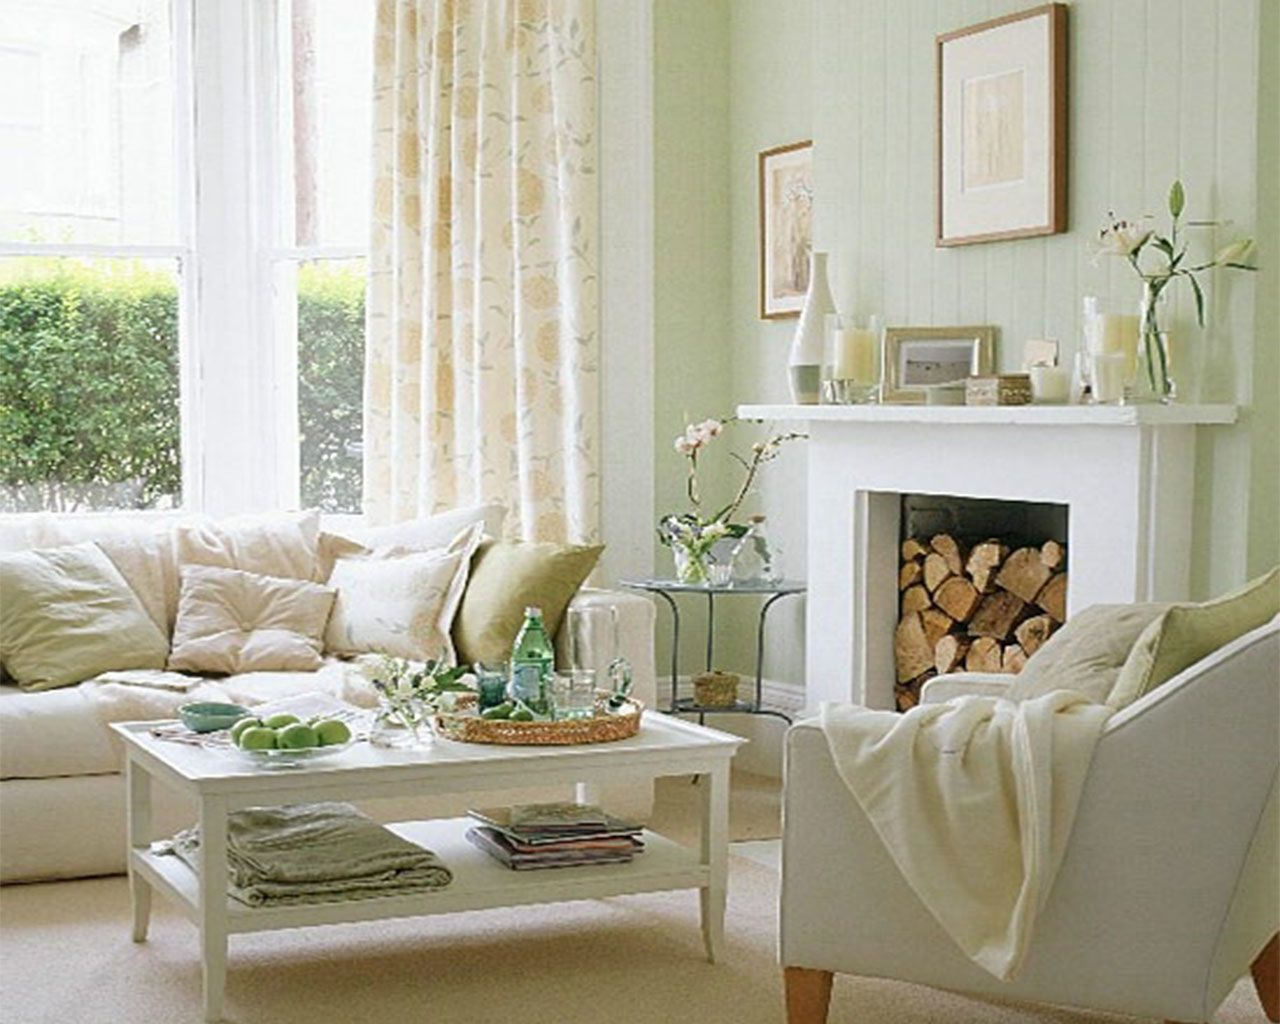 Creamy White Living Room With Accents Of Very Light Green And Blue Pastel Living Room Spring Living Room Country Living Room Design